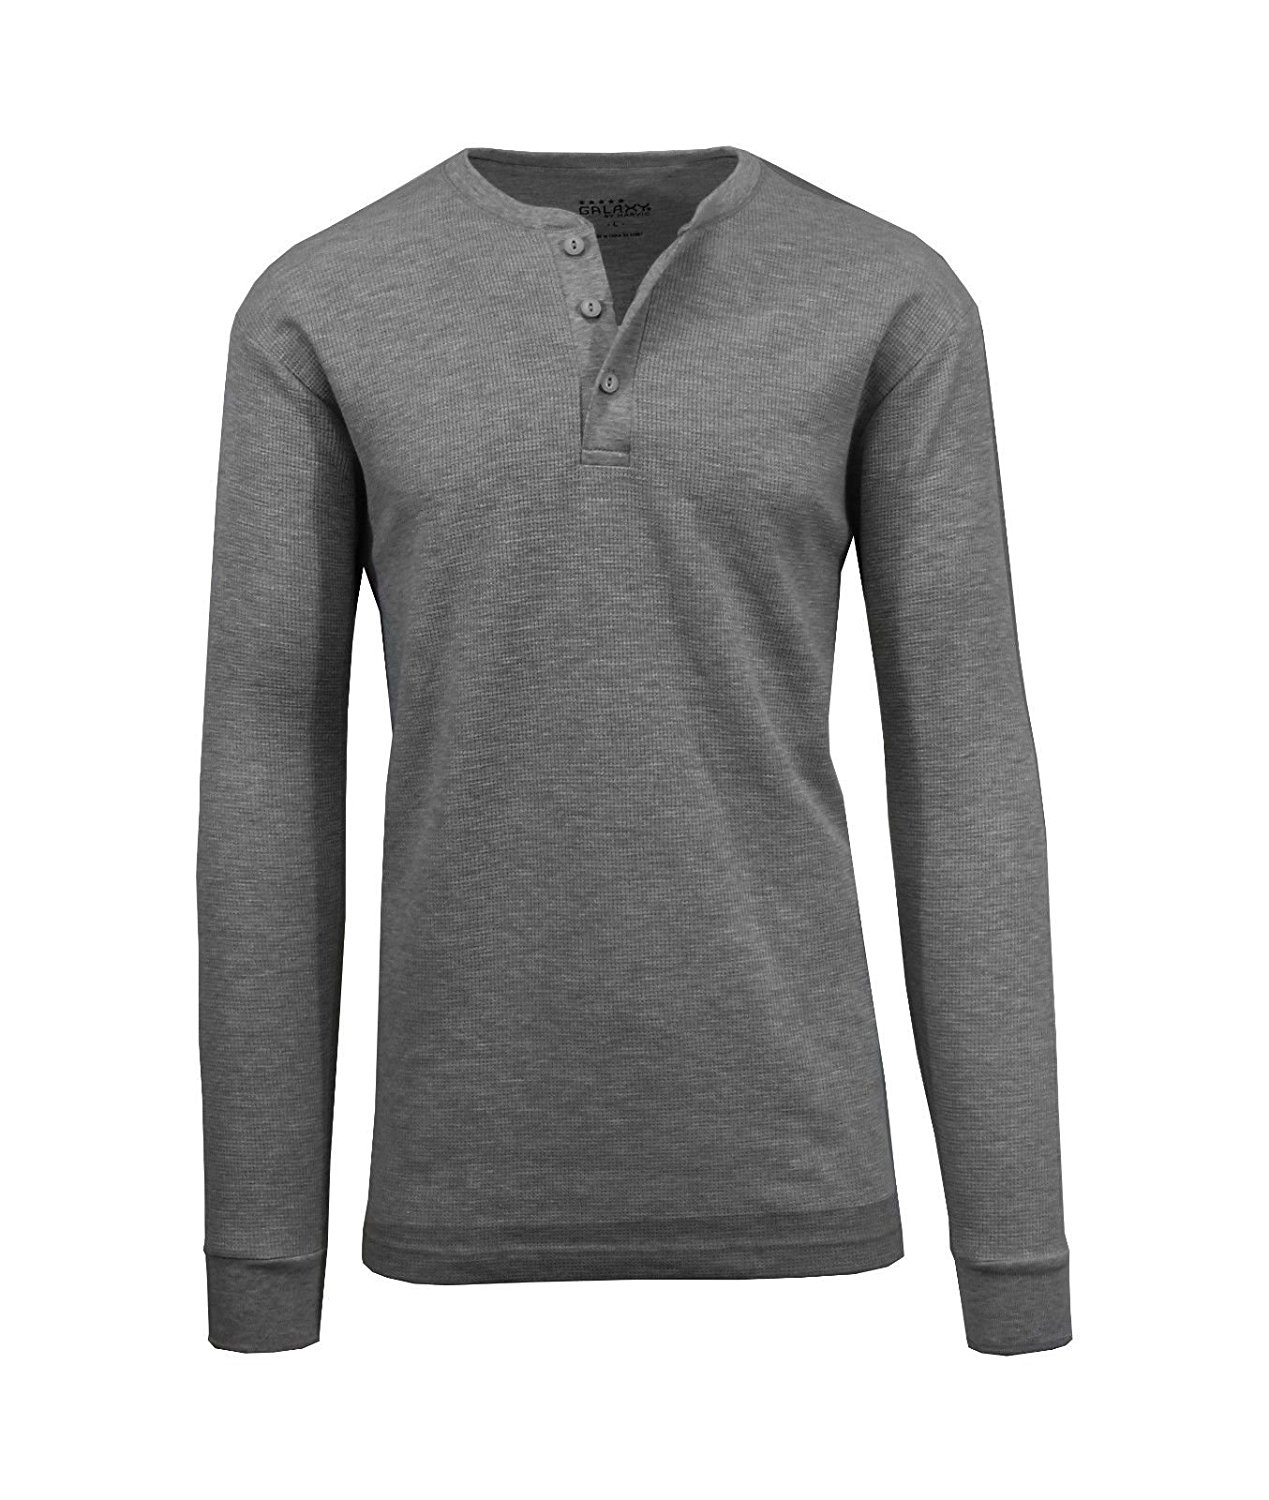 7b46fb65 Get Quotations · Galaxy by Harvic Men's Waffle-Knit Thermal Henley,  Black/Charcoal/Heather Grey